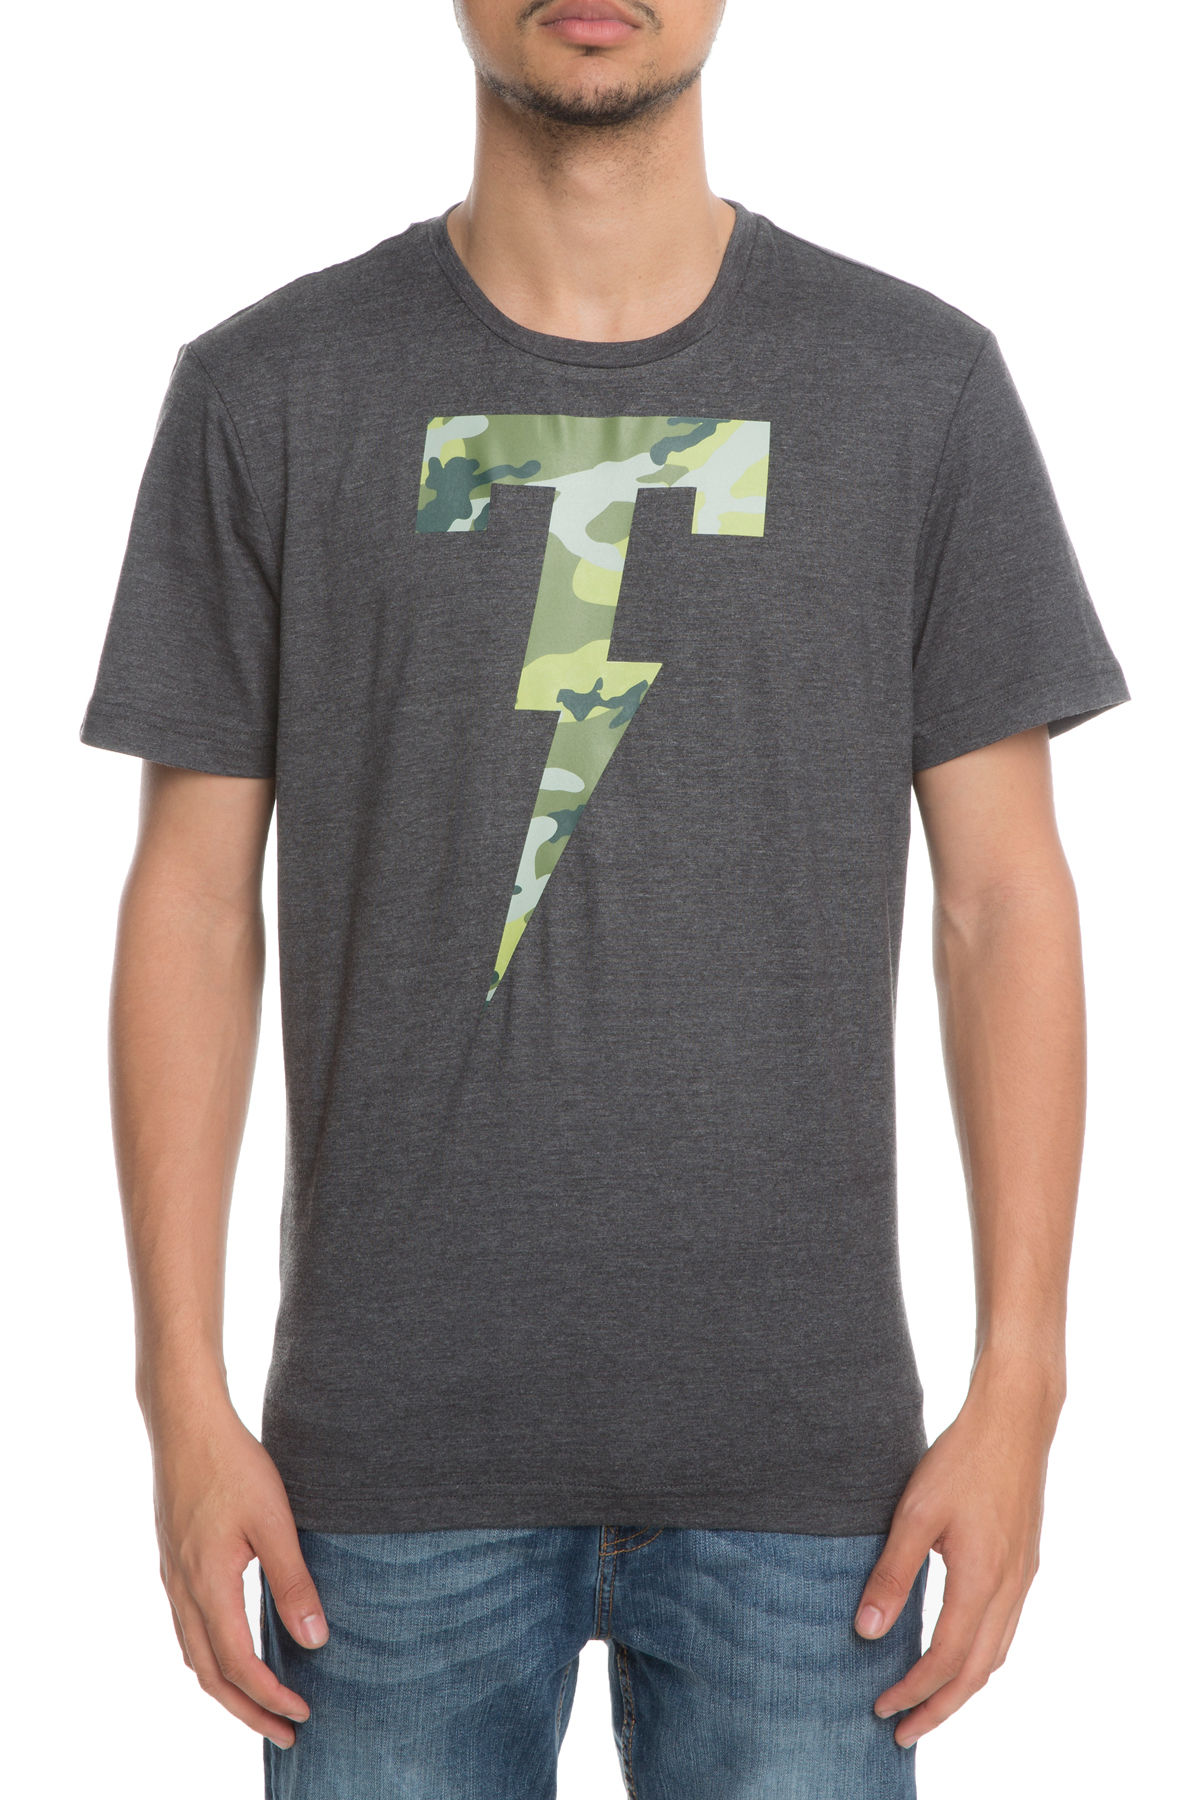 Image of The Camo Fill Short Sleeve Tee in Heather Grey